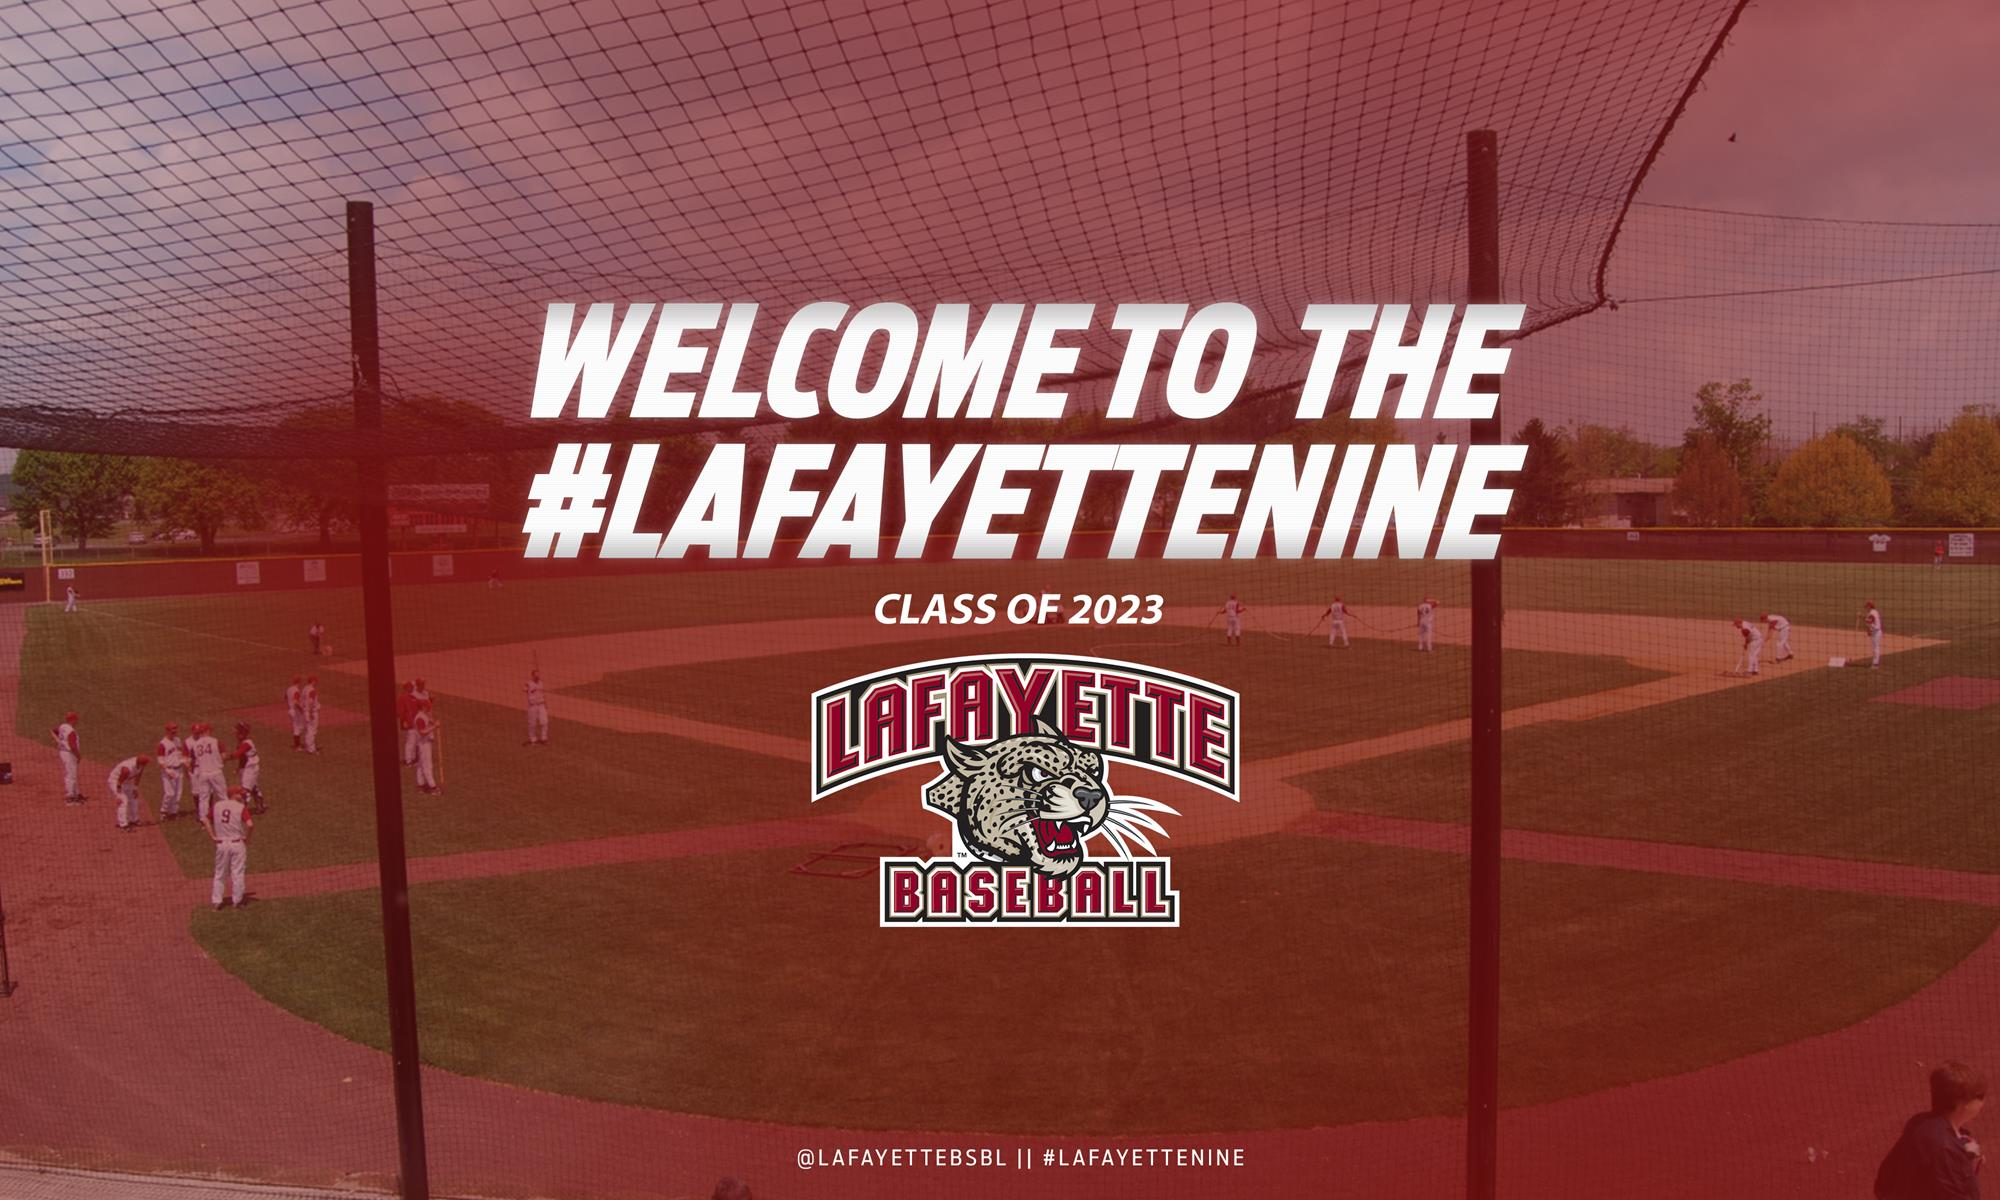 Baseball Welcomes 11 to Class of 2023 - Lafayette College Athletics